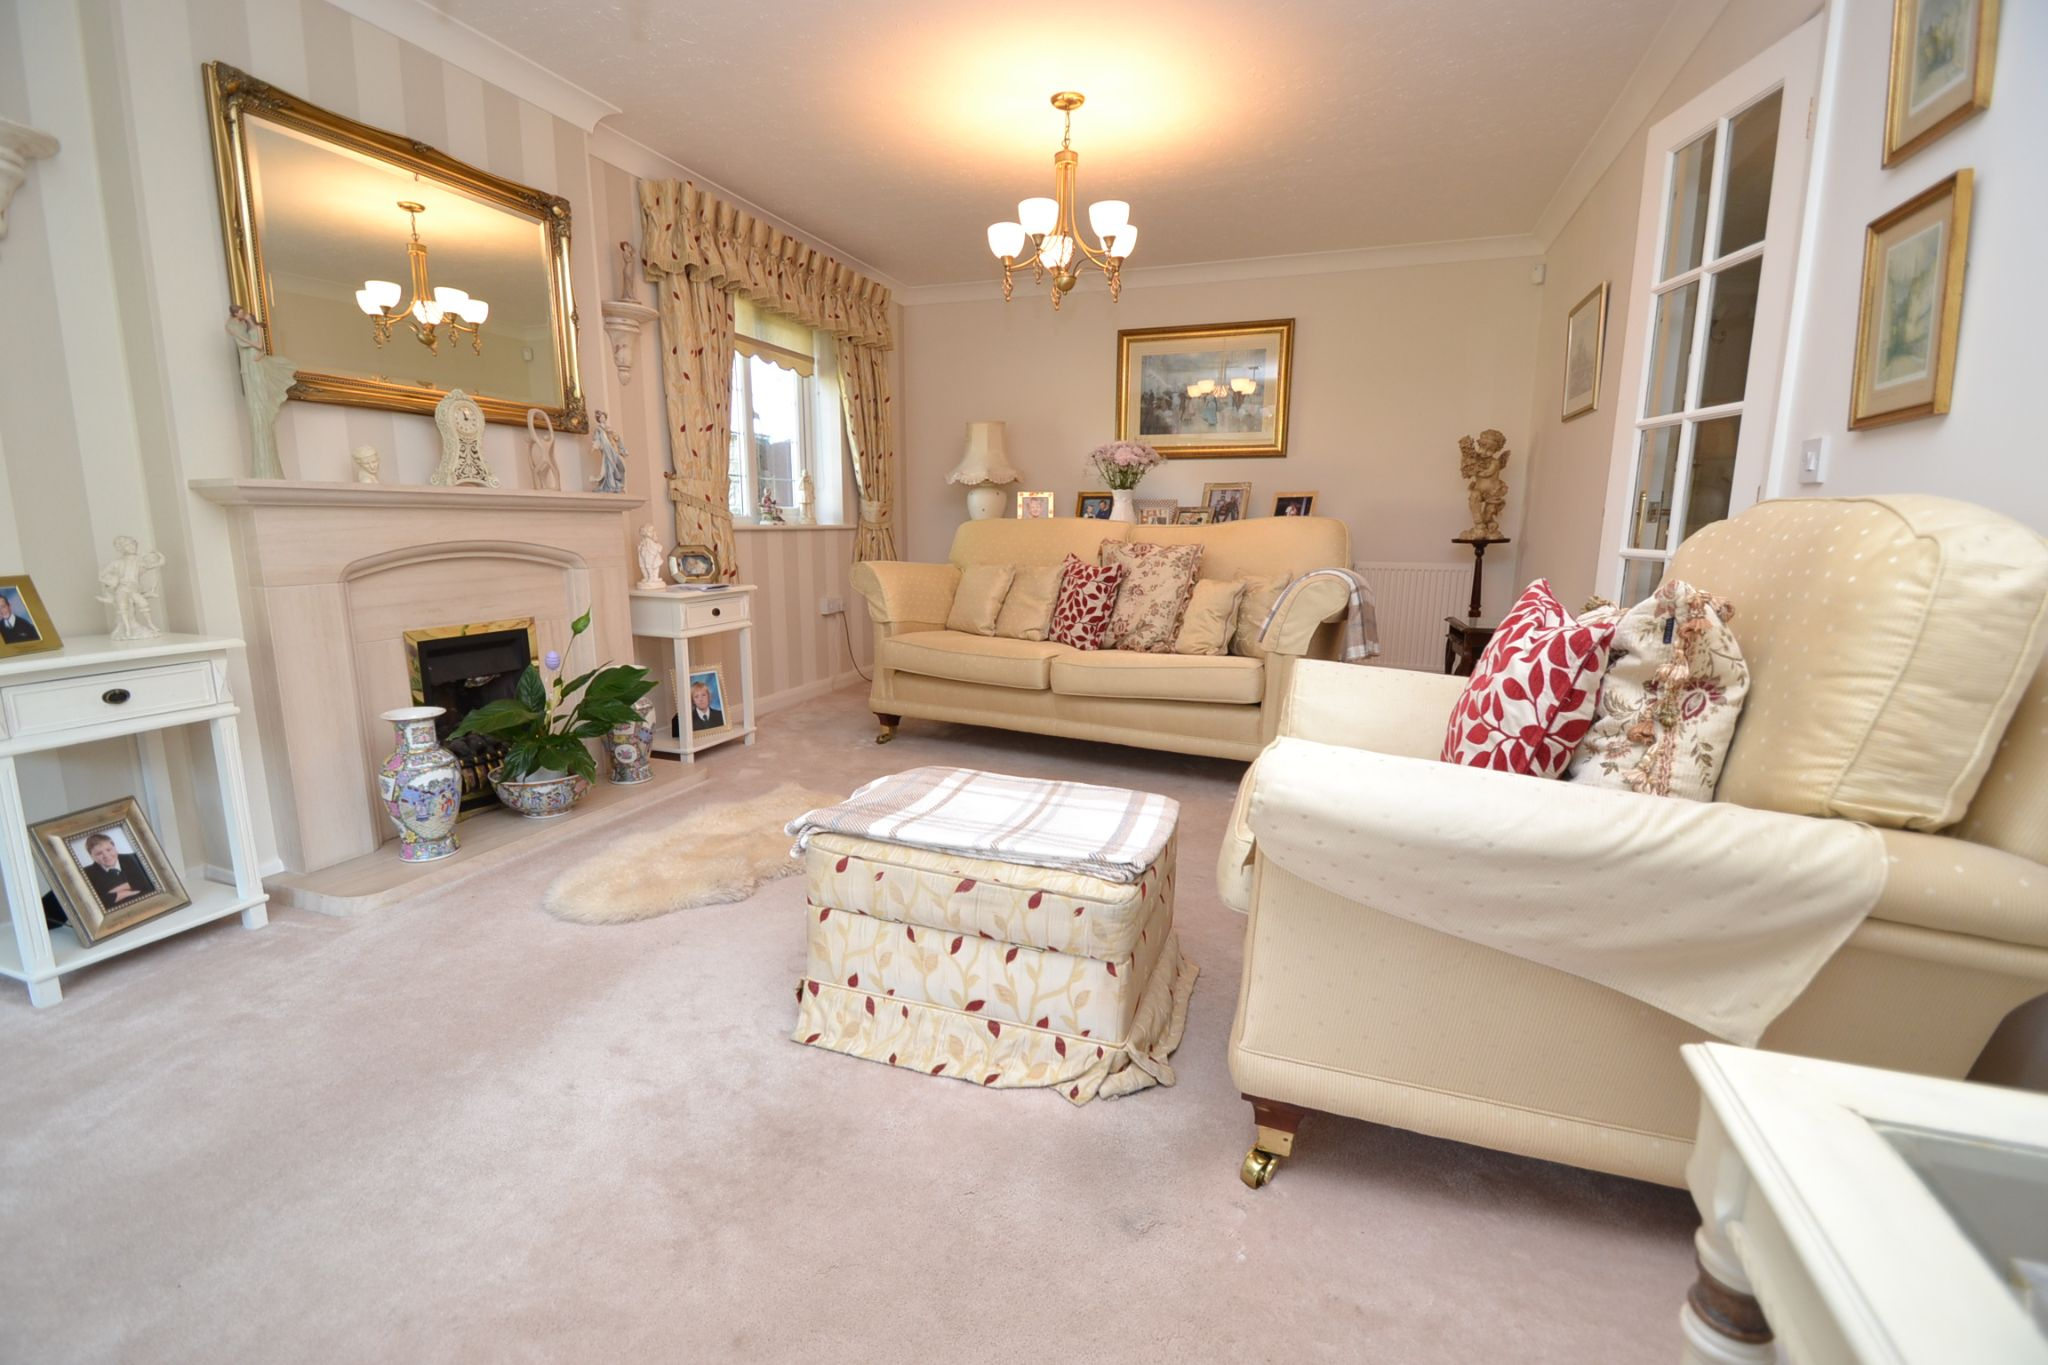 3 Bedroom Detached Bungalow For Sale - Photograph 5